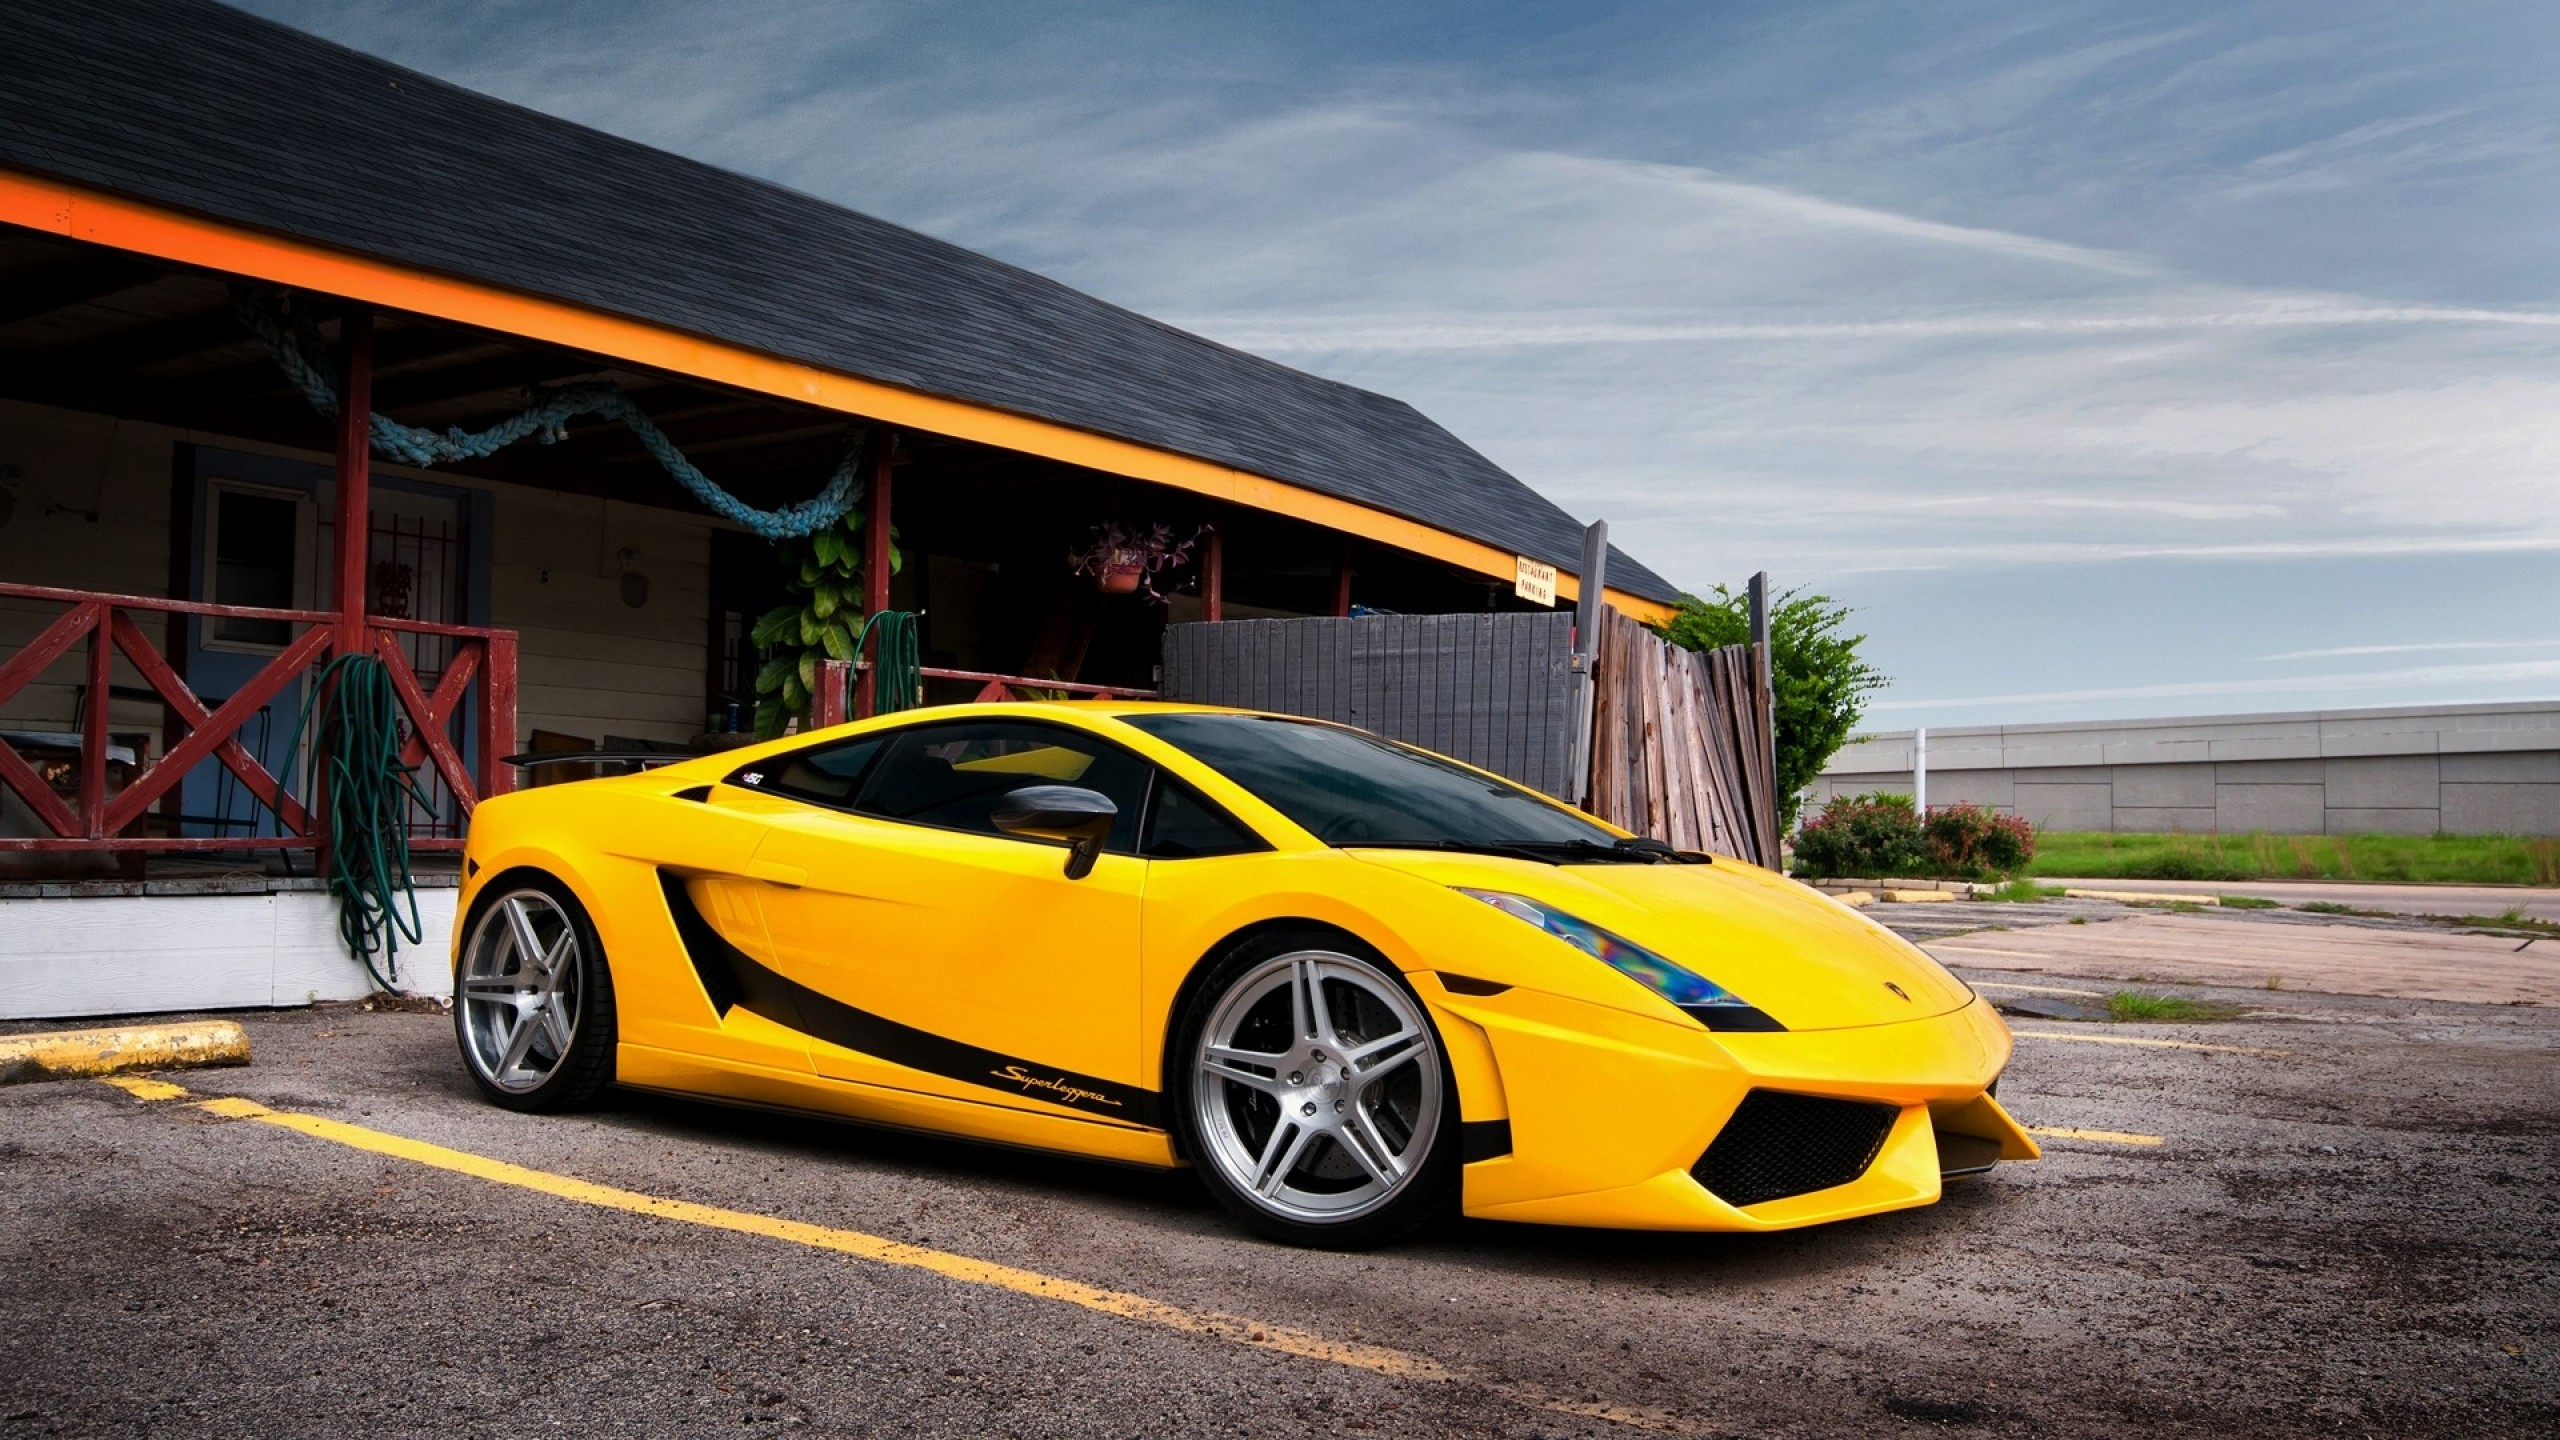 Gallardo yel...Yellow Lamborghini Gallardo Wallpaper